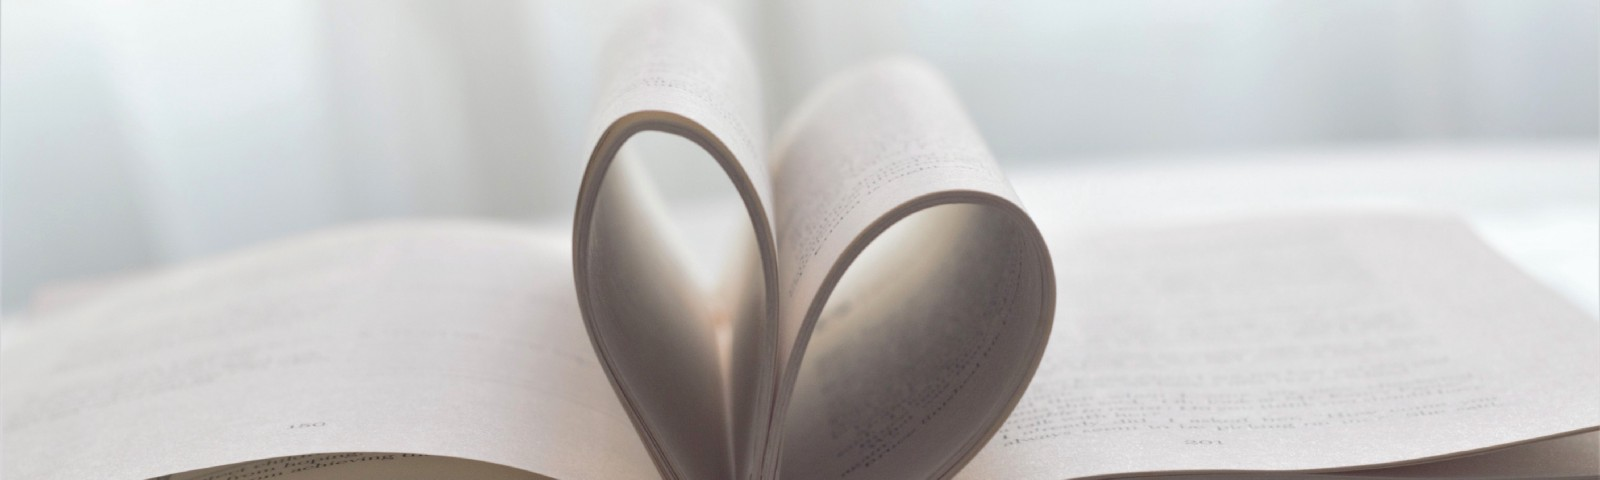 Book pages folded into heart.